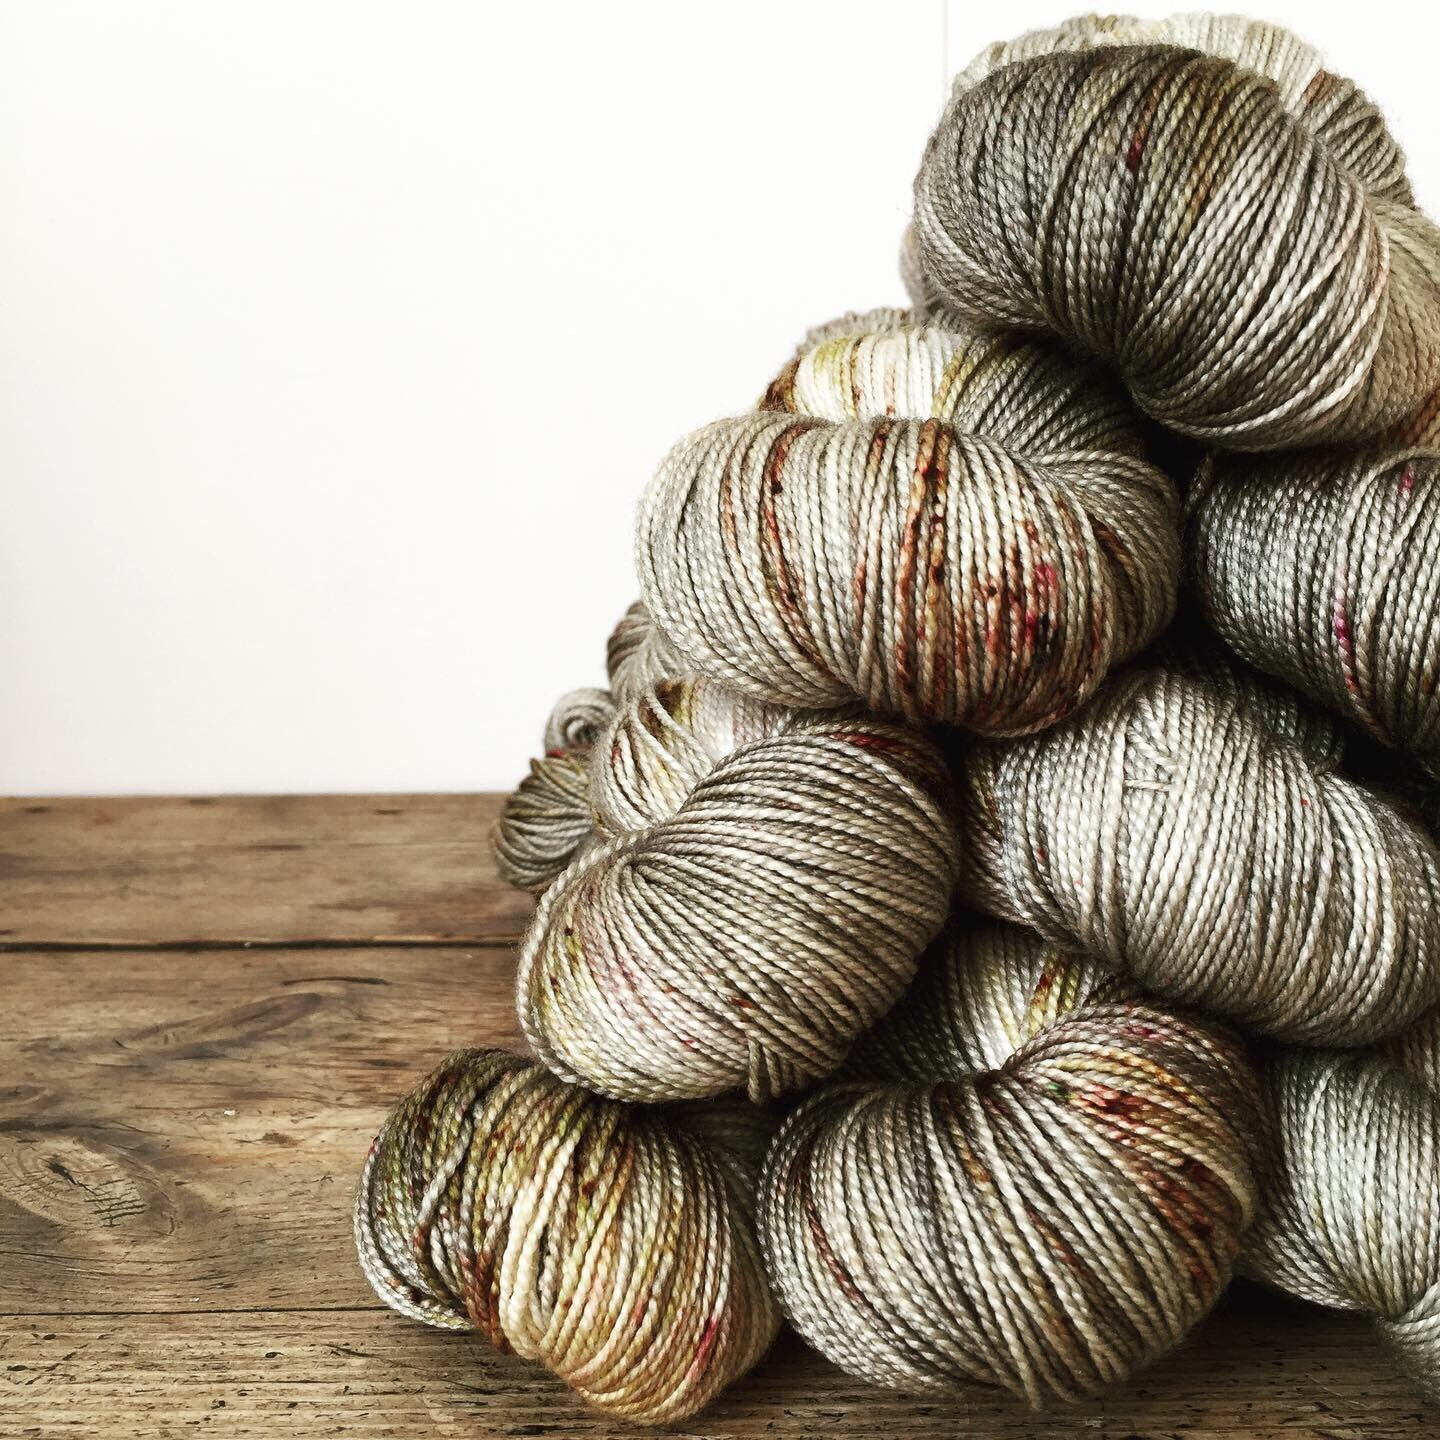 Lux Hi Twist in Rune Stone, a warm greenish grey with dark gold and burgundy speckles by The Urban Purl